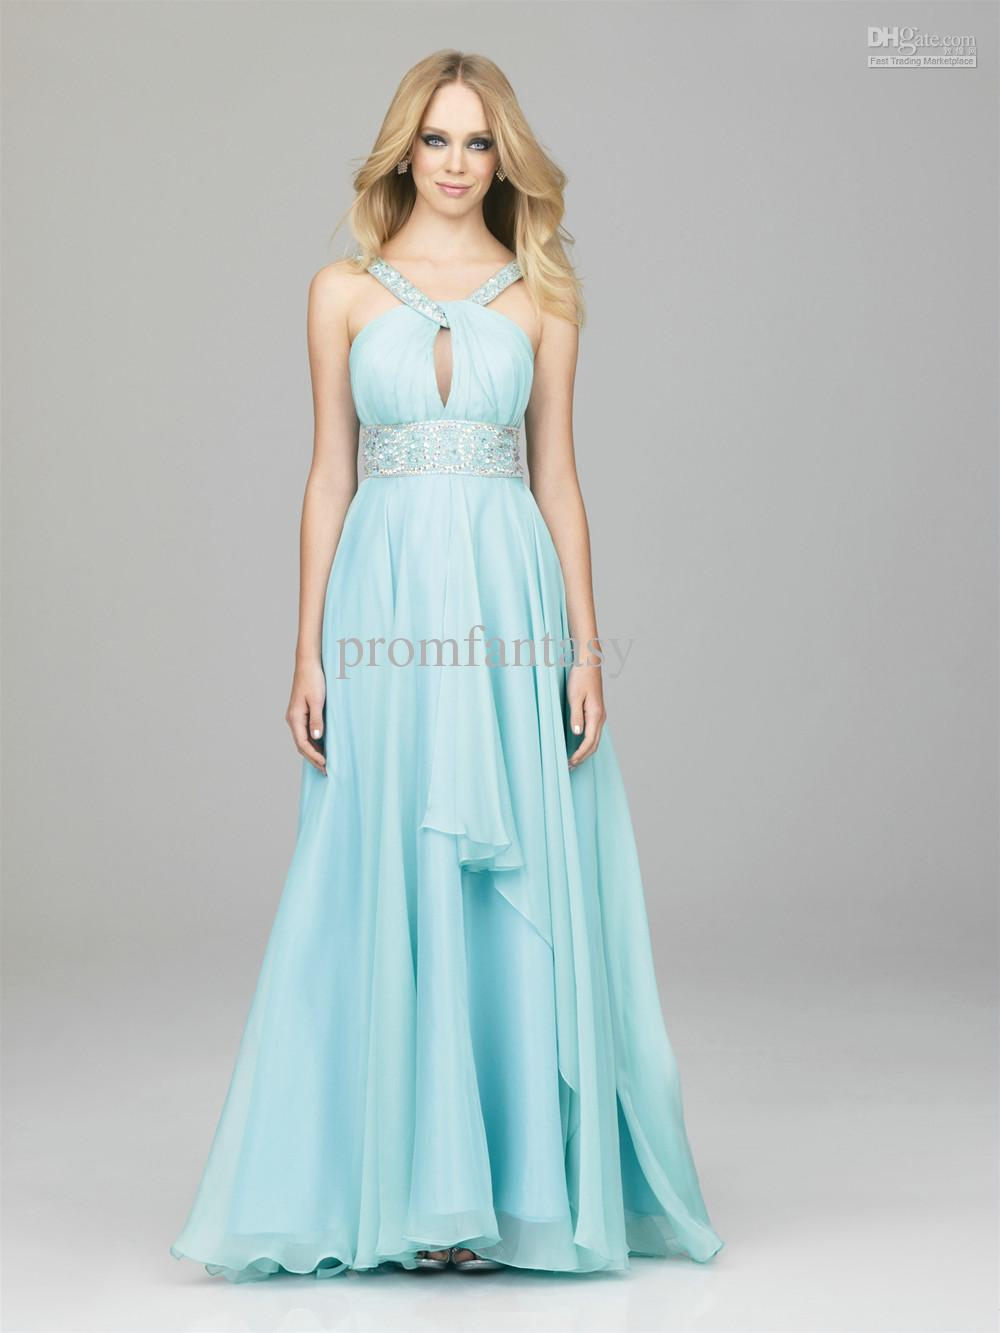 How To Choose The Color Of Summer Prom Dresses 0017